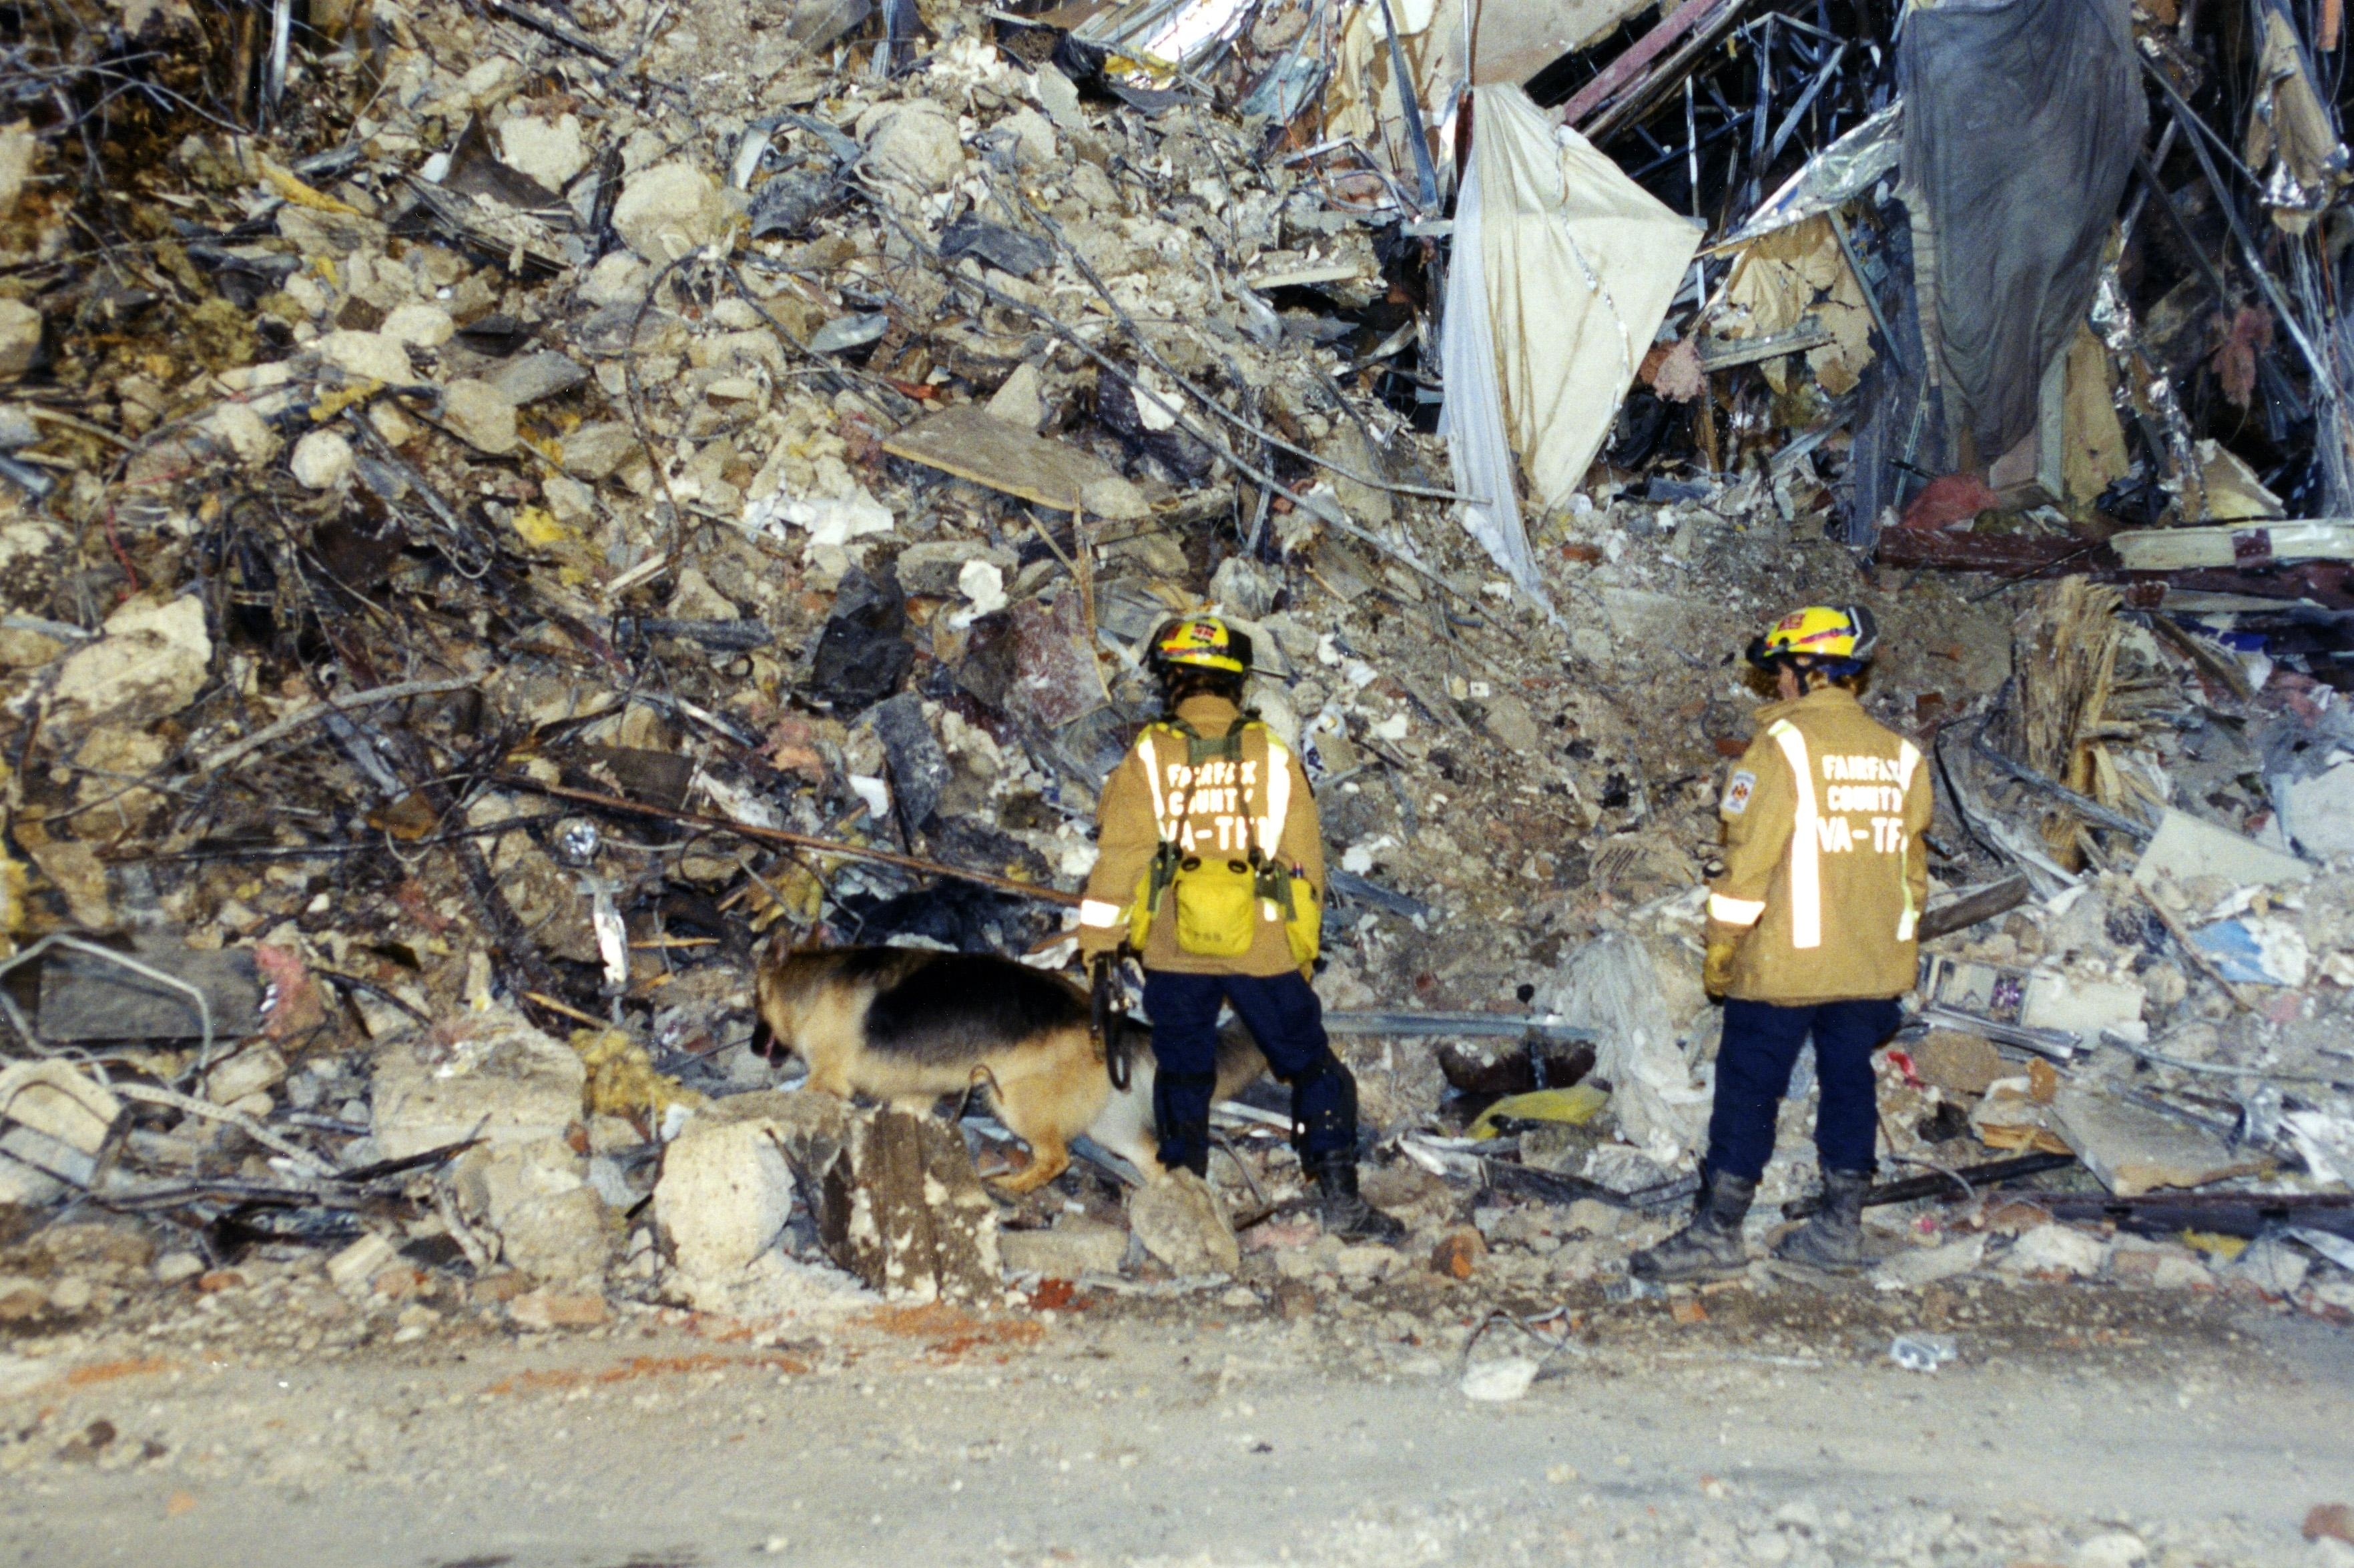 Fairfax County personnel with canine searching through debris outside the Pentagon following the attack on 9/11. (Pic: FBI)